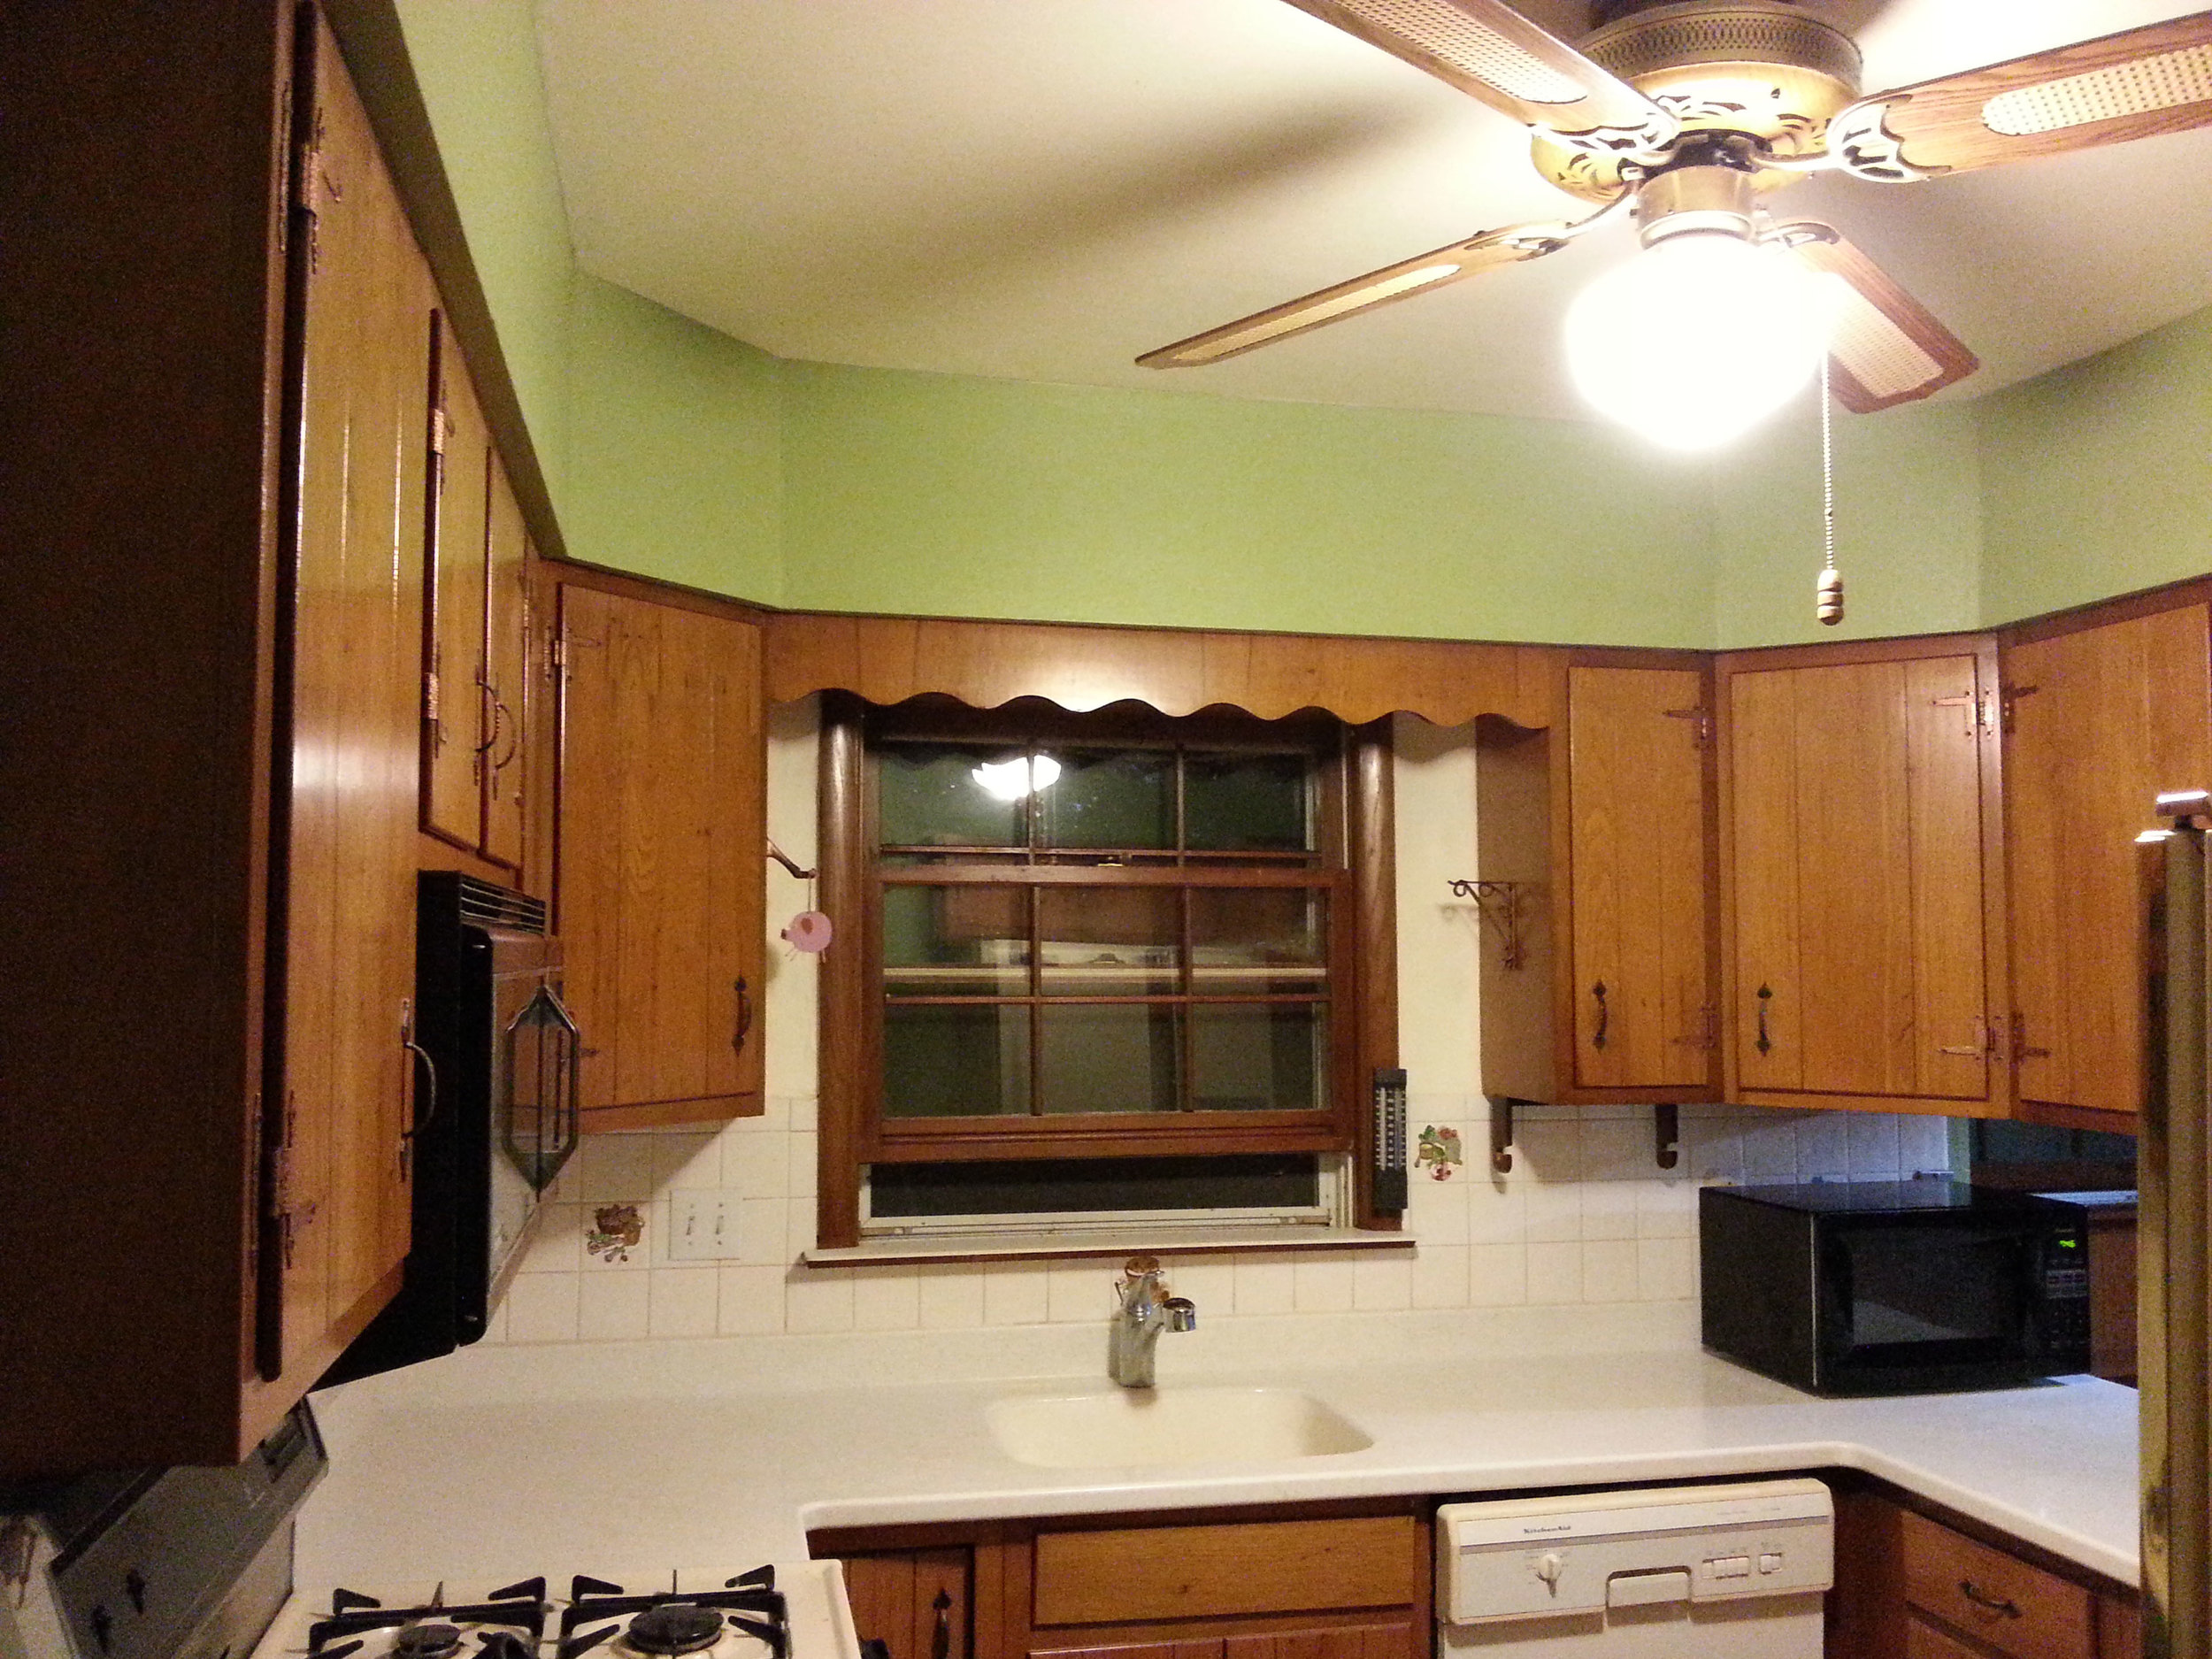 madison-painter-kitchen-afters.jpg